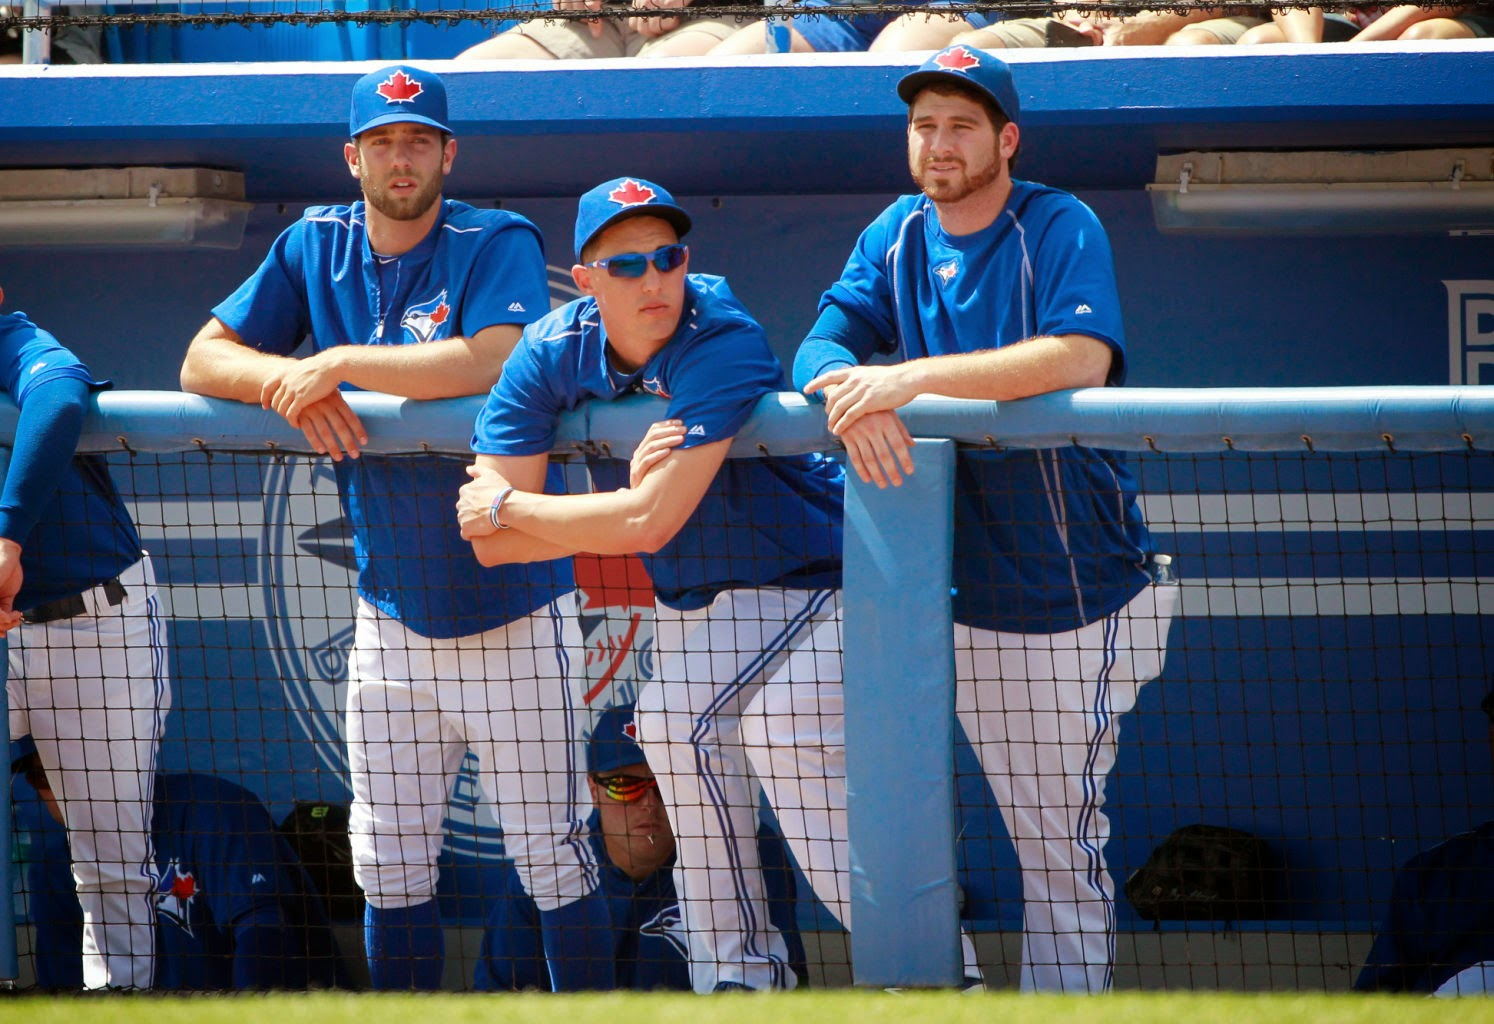 DO THE JAYS NEED TO IMPROVE THEIR STAFF? OR CAN THEY HIT THEIR WAY TO THE TOP?